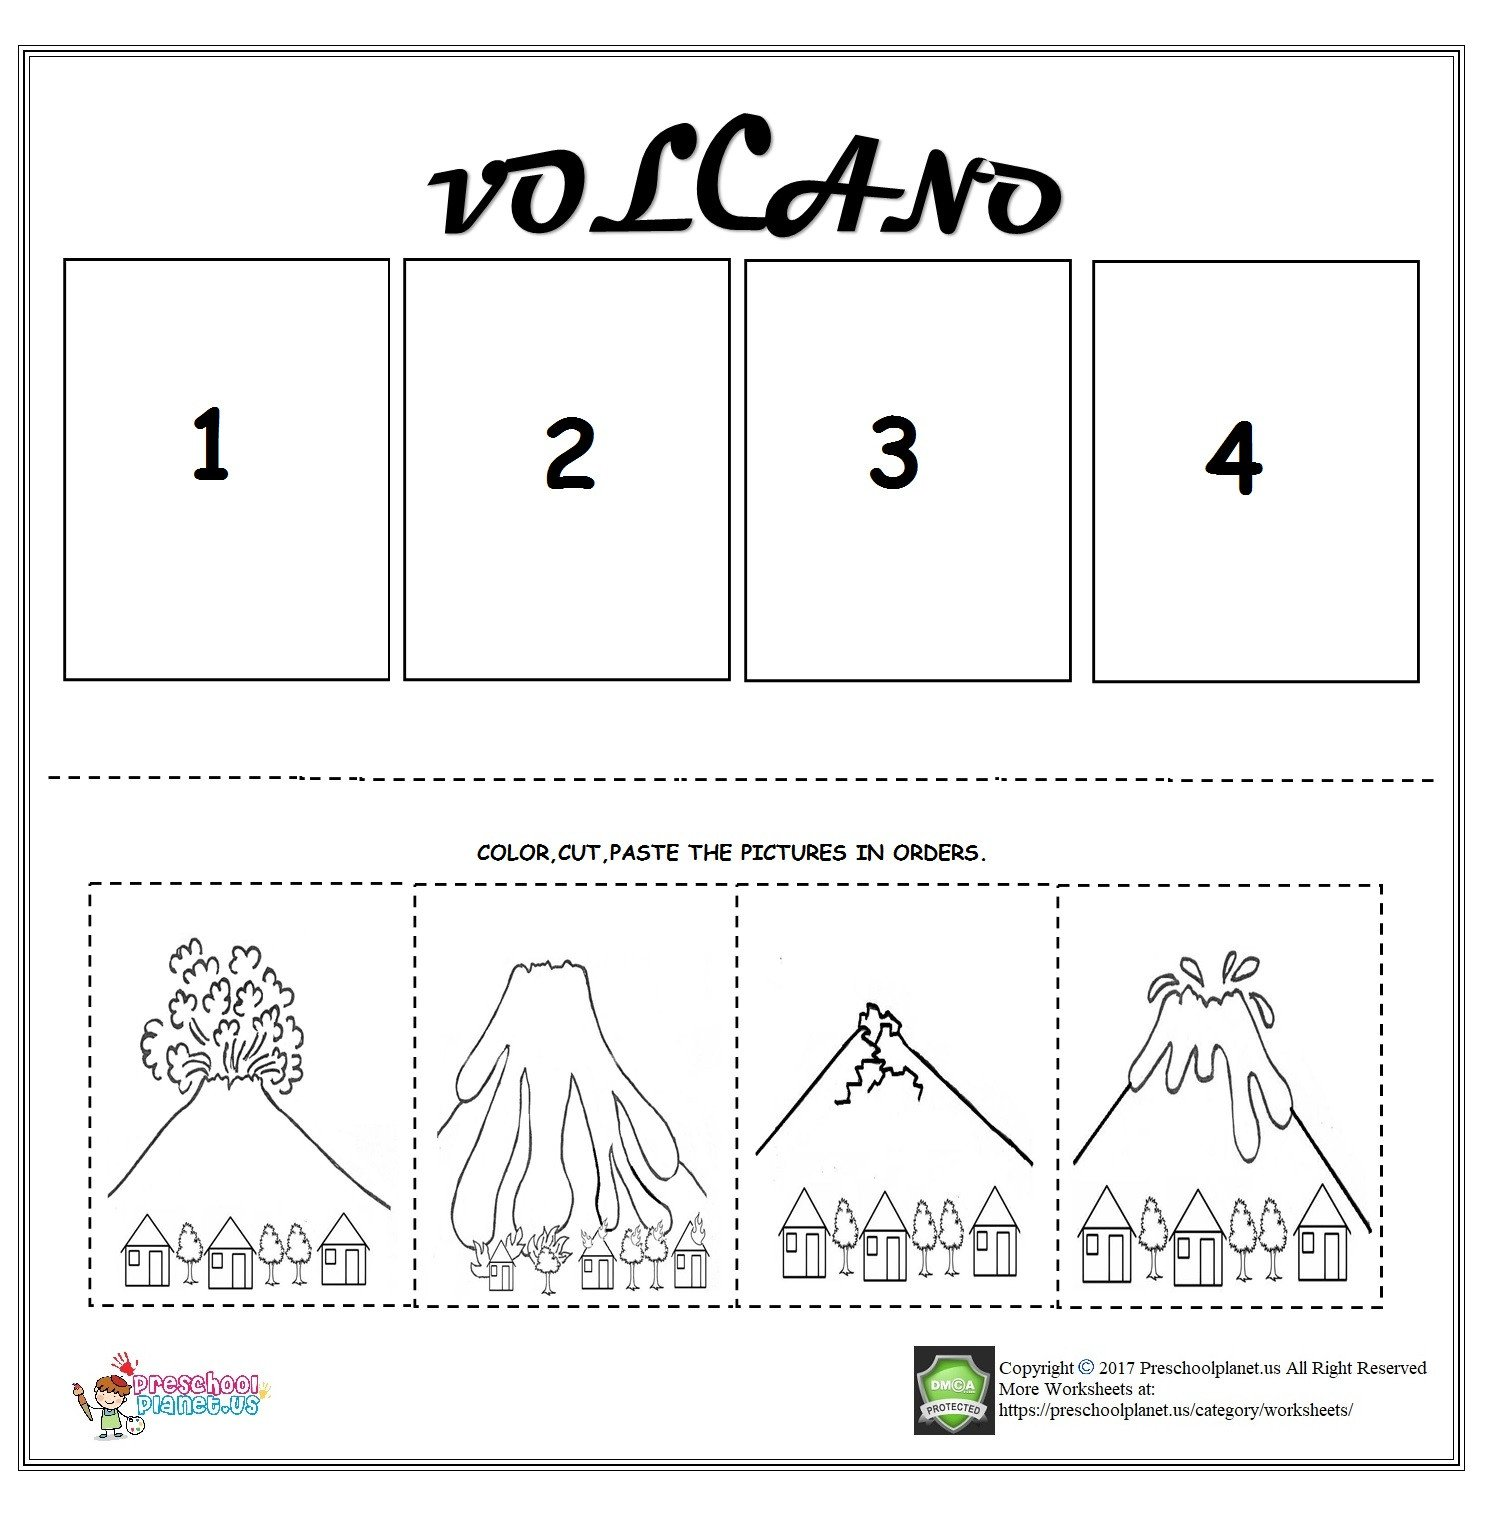 Sequence Worksheets for Kindergarten Volcano Sequencing Worksheet for Kids – Preschoolplanet